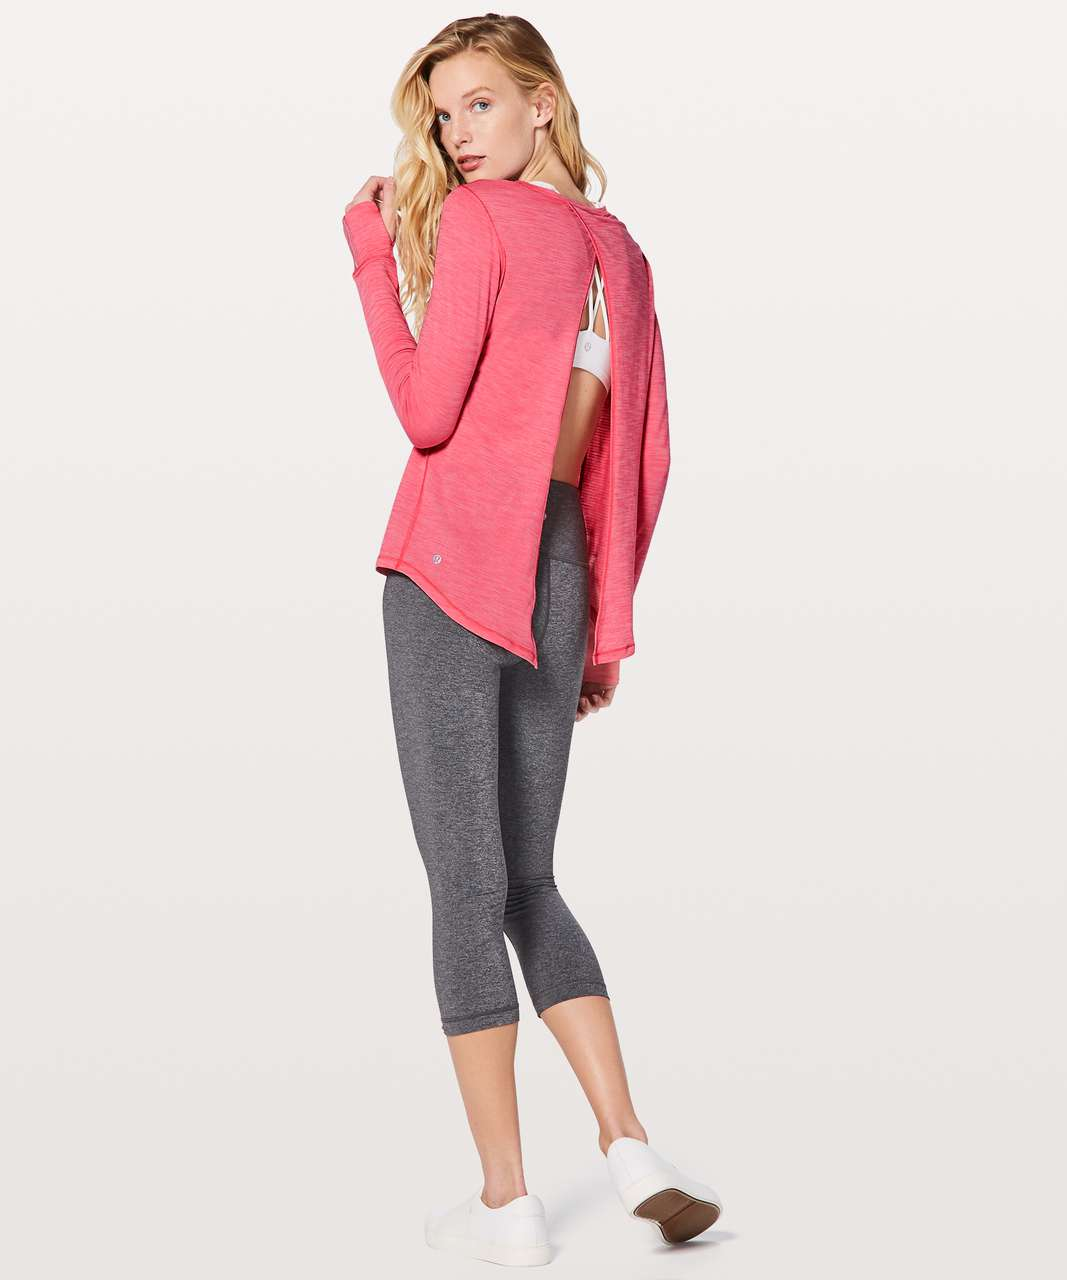 Lululemon Beat The Heat Long Sleeve - Heathered Flash Light Tone